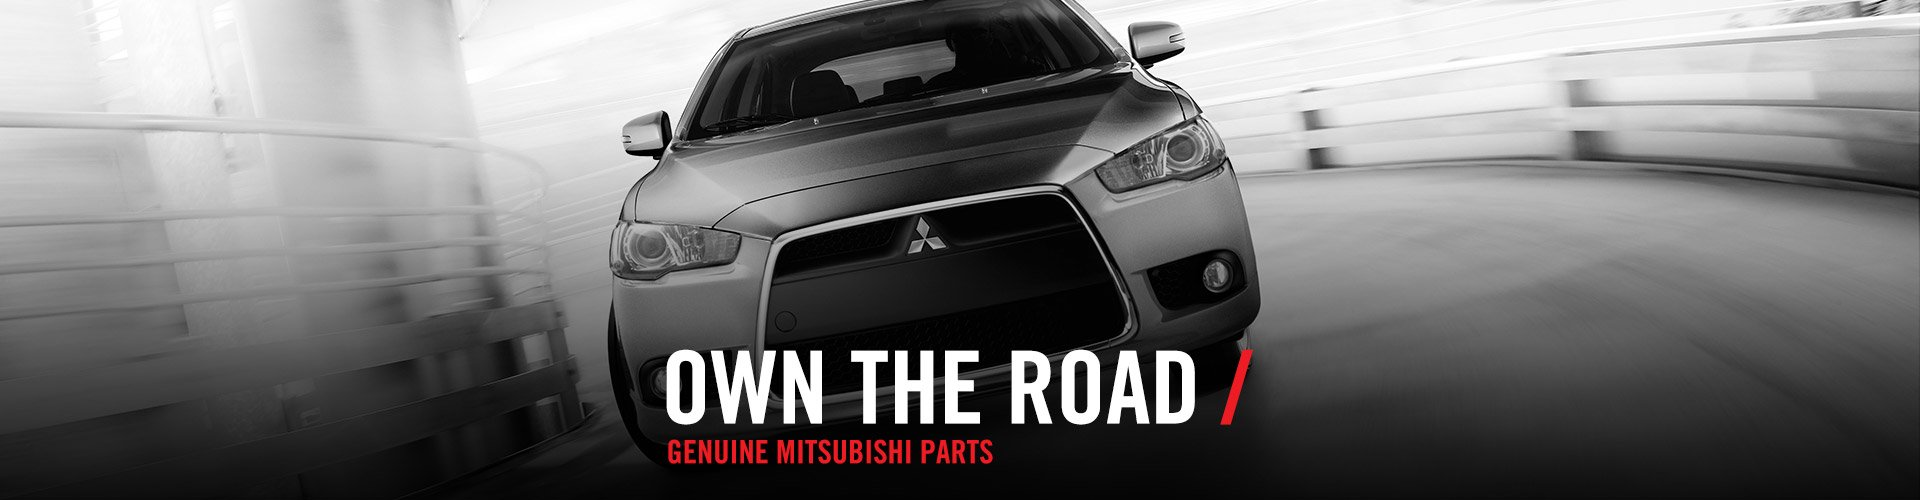 Genuine Mitsubishi Parts